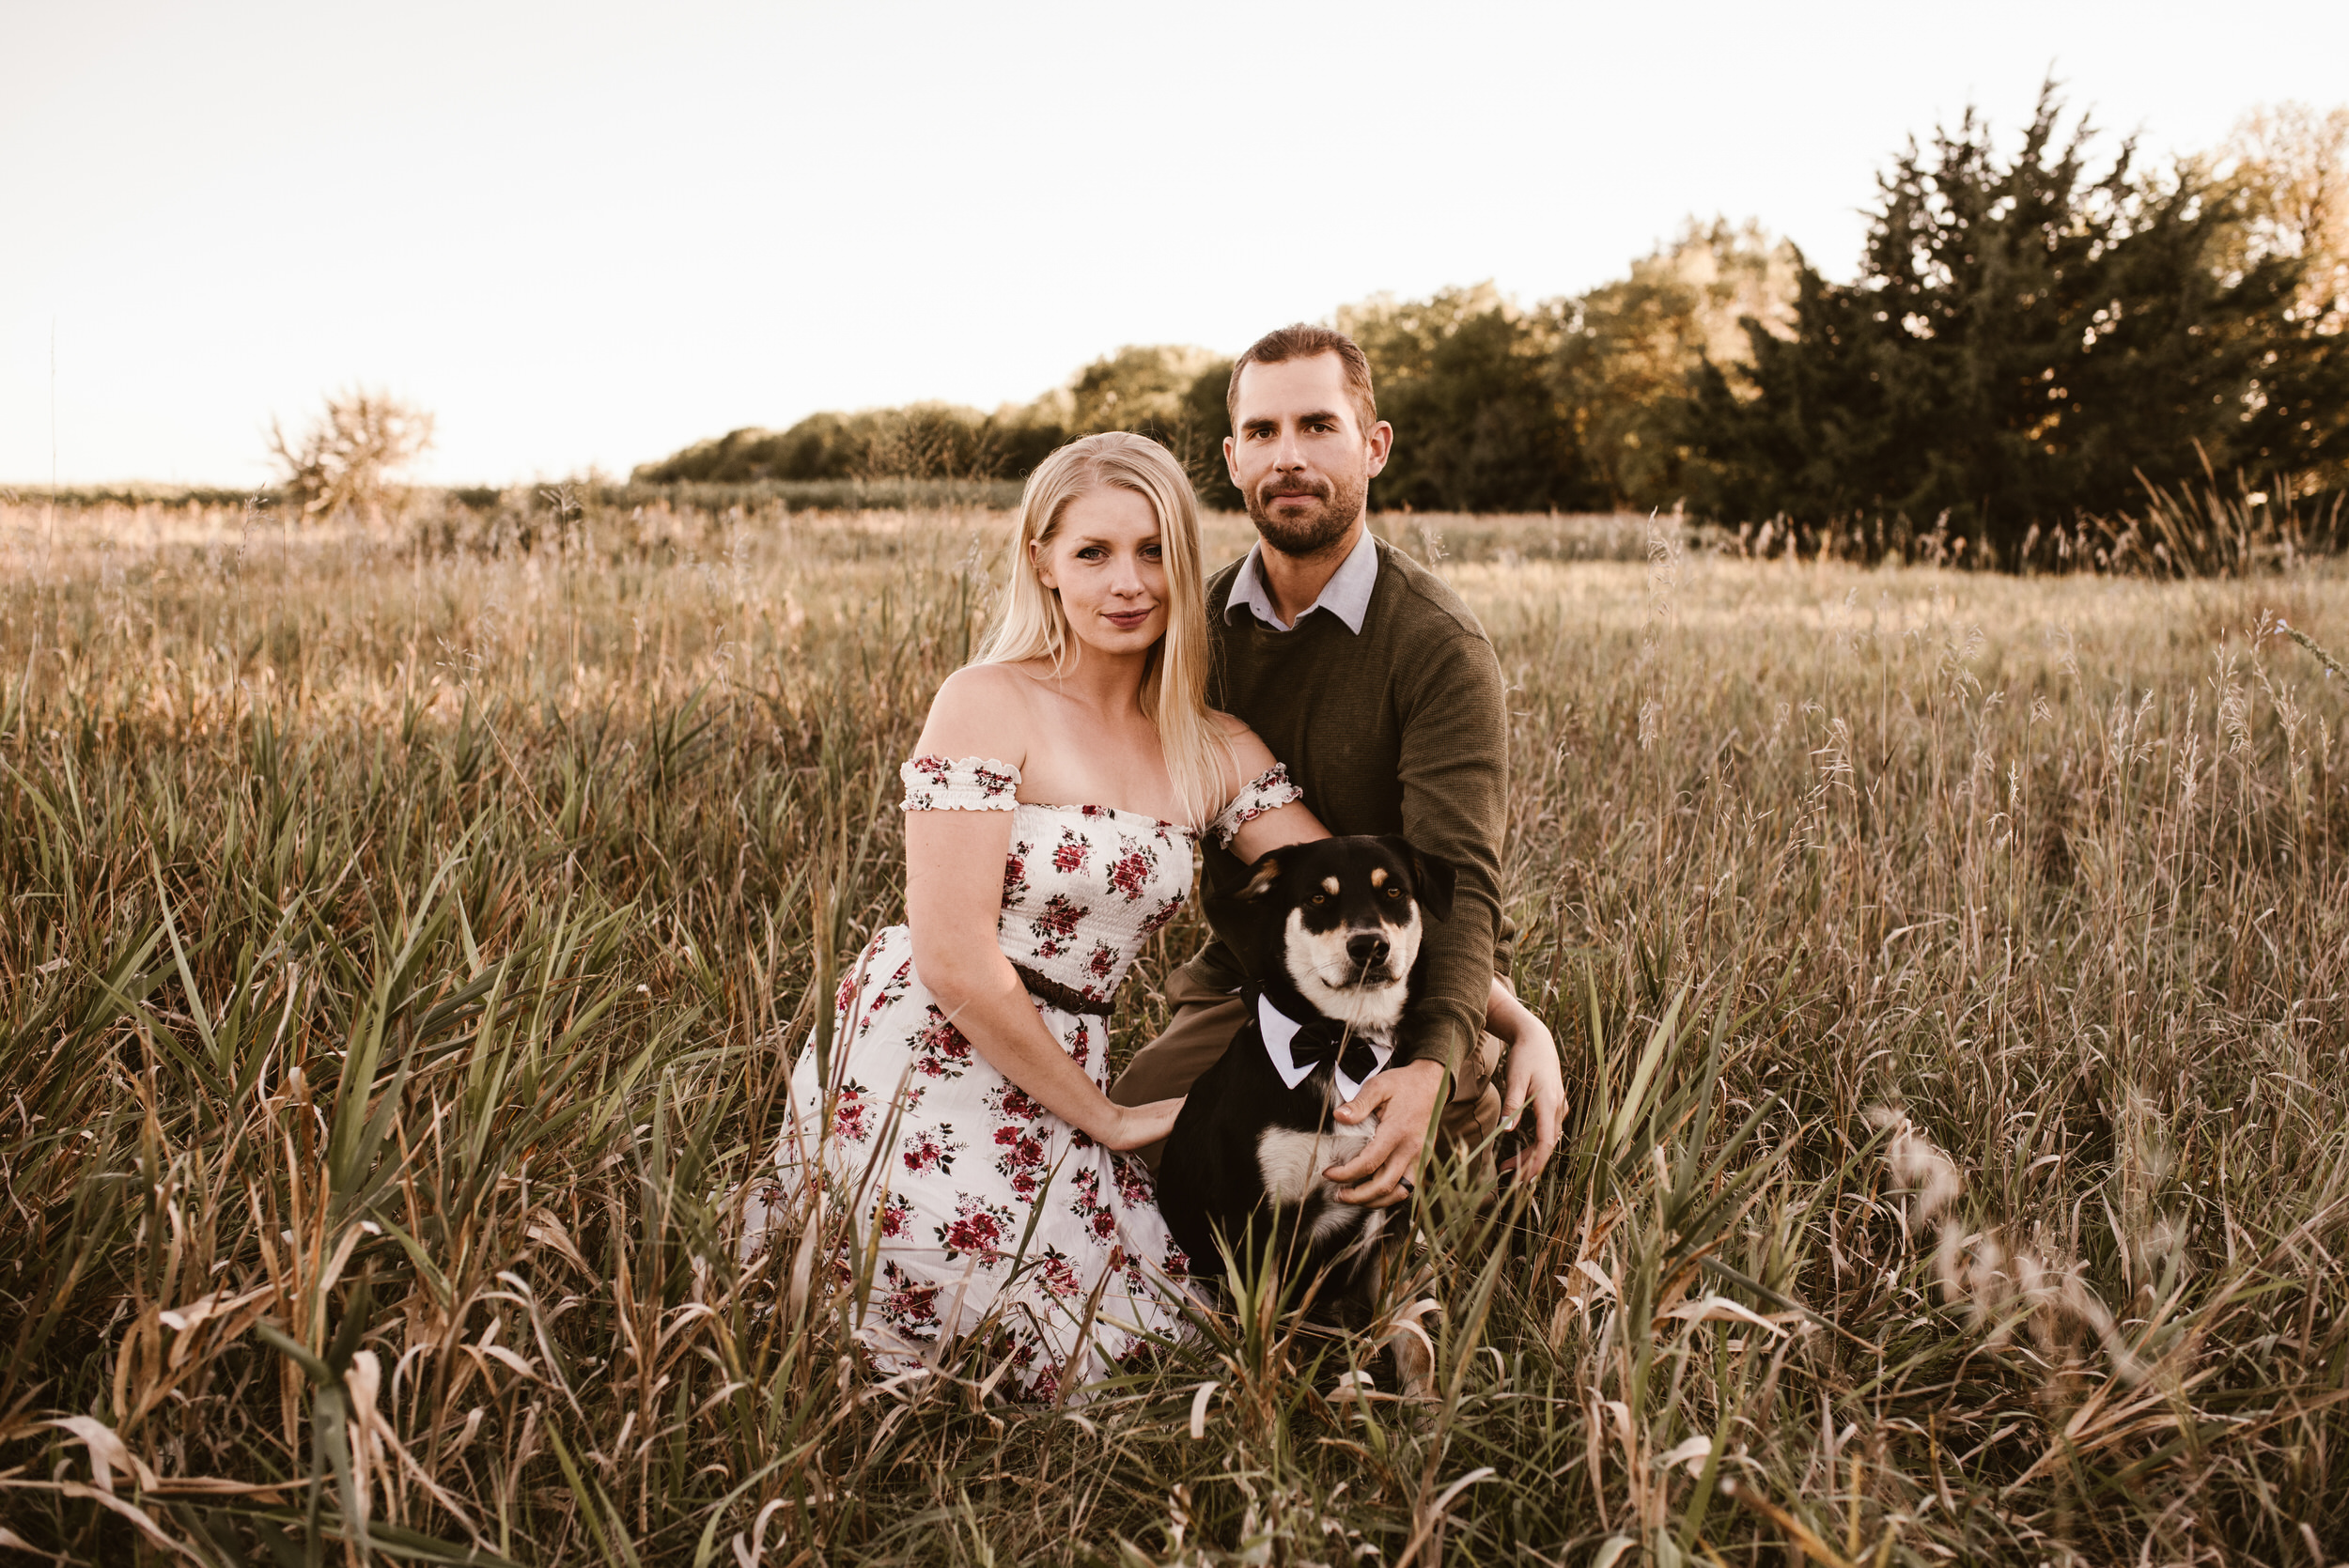 Nebraska Engagement Photographer Kaylie Sirek Photography 14.jpg